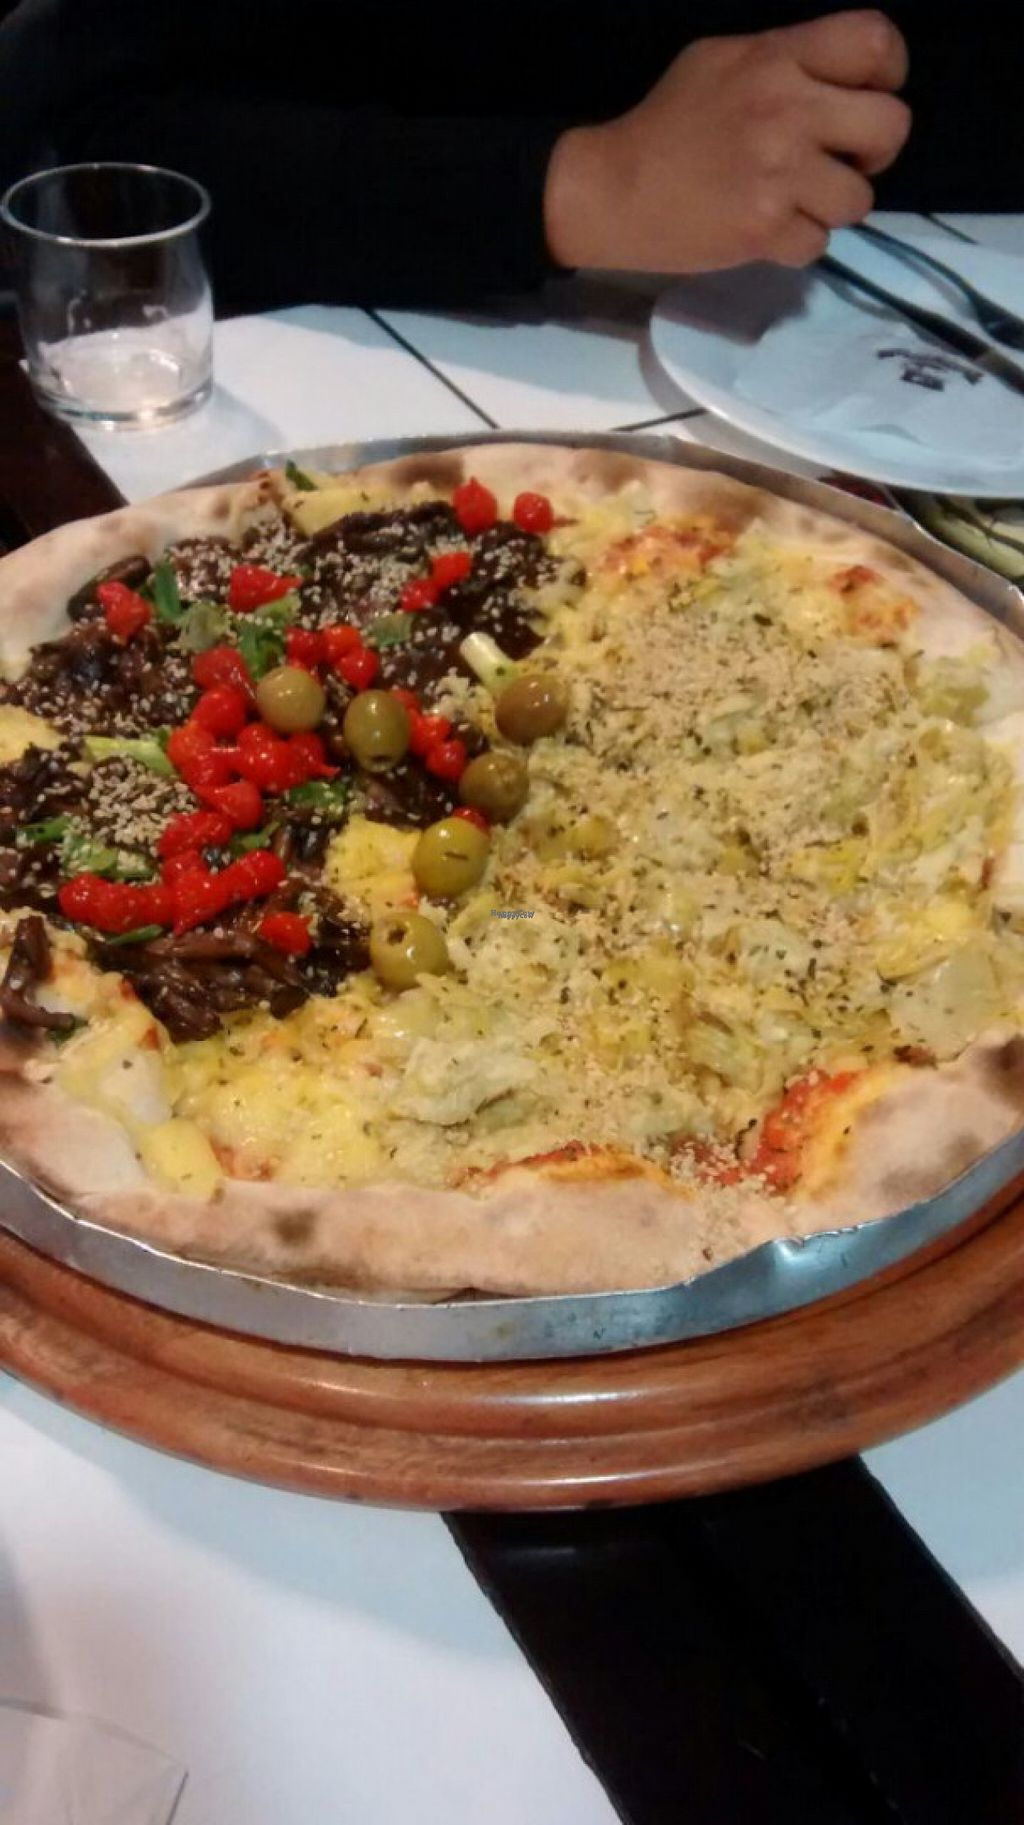 """Photo of Barao Natural - Baraozinho  by <a href=""""/members/profile/Sylvane"""">Sylvane</a> <br/>Great Vegan Pizza !!! <br/> August 22, 2016  - <a href='/contact/abuse/image/51963/170703'>Report</a>"""